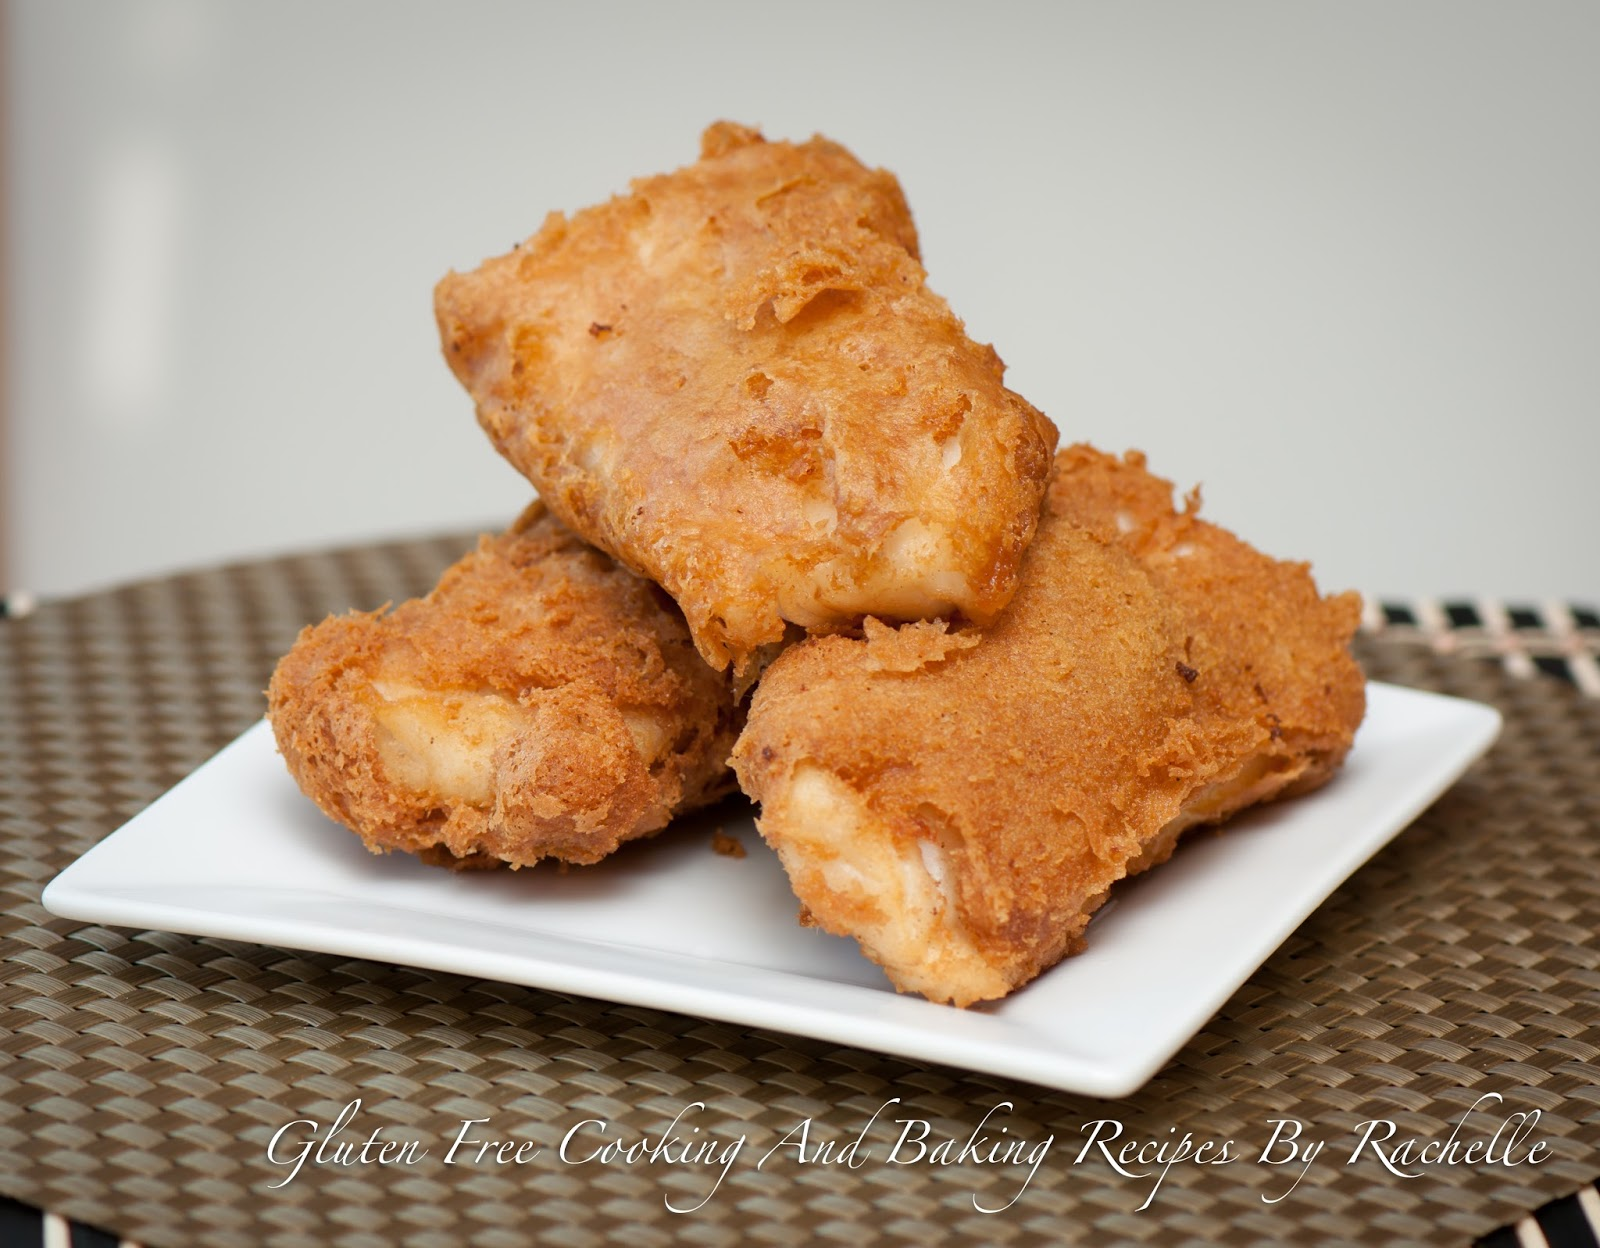 Gluten free baking by rachelle gluten free deep fried fish for Deep fry fish batter